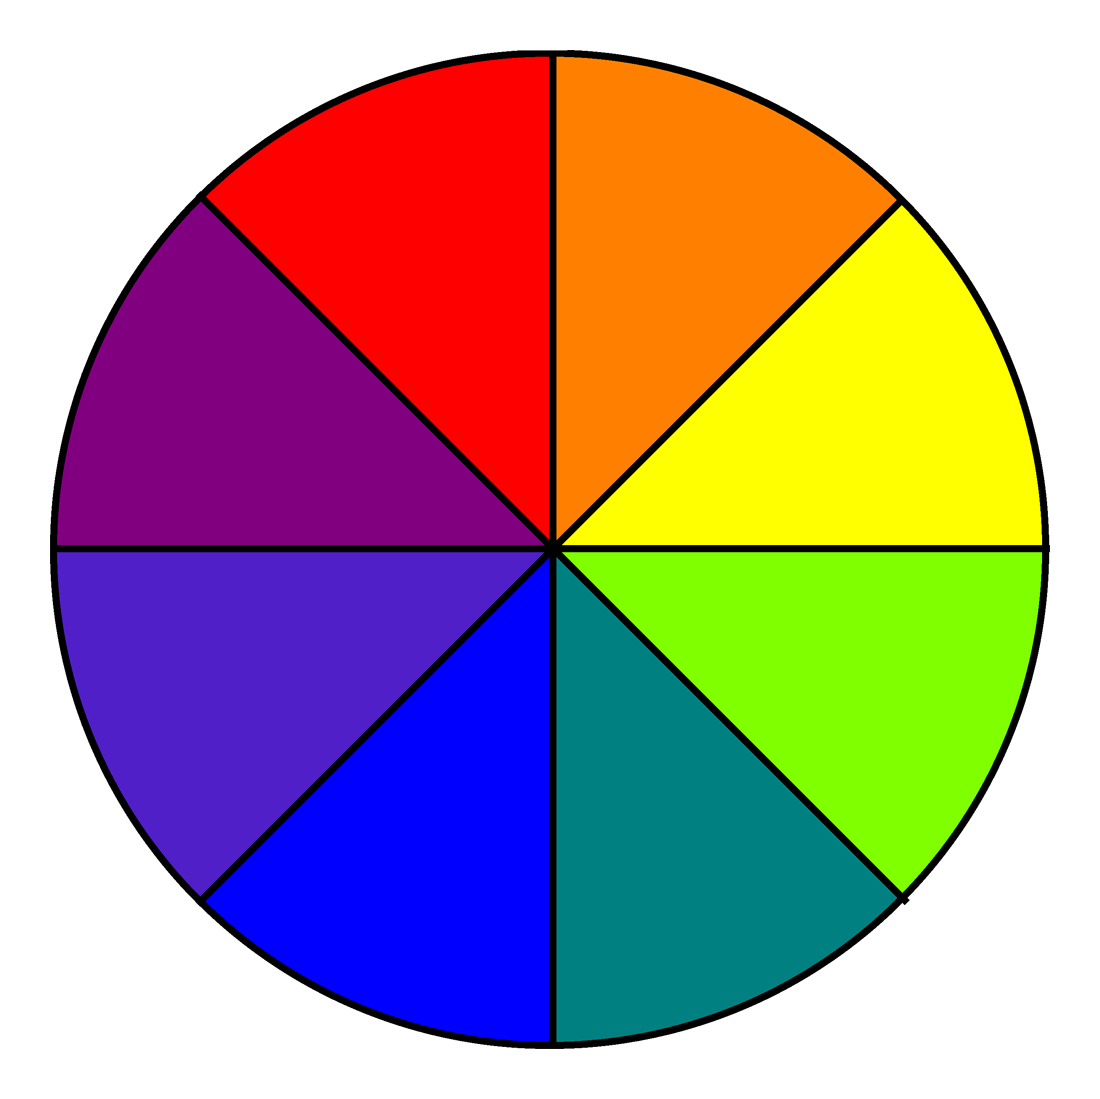 Kolor w fotografii – Koło kolorów (colour wheel)